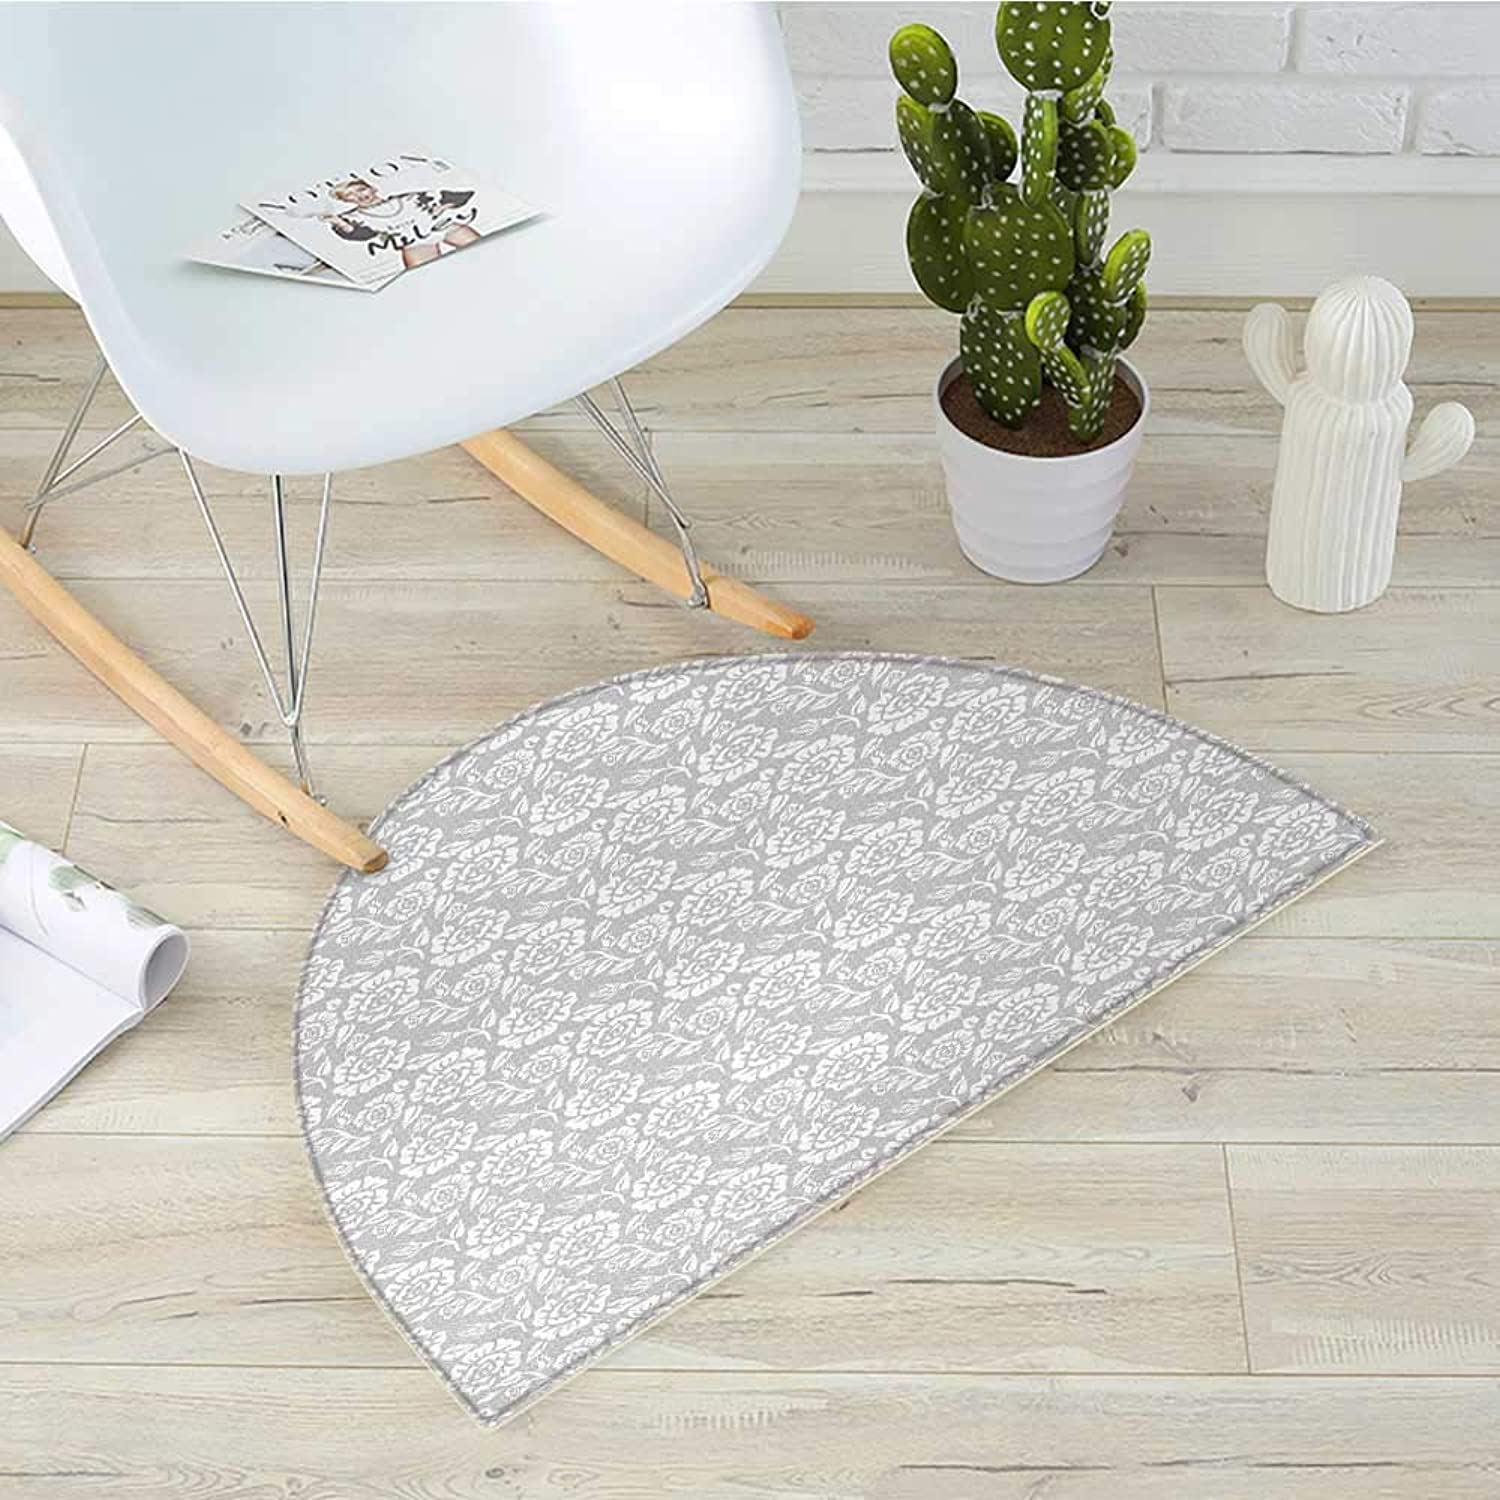 Grey Half Round Door mats Retro Inspired Floral Design with Past Effects Dated Botanical Old Victorian Features Bathroom Mat H 39.3  xD 59  Pale Green